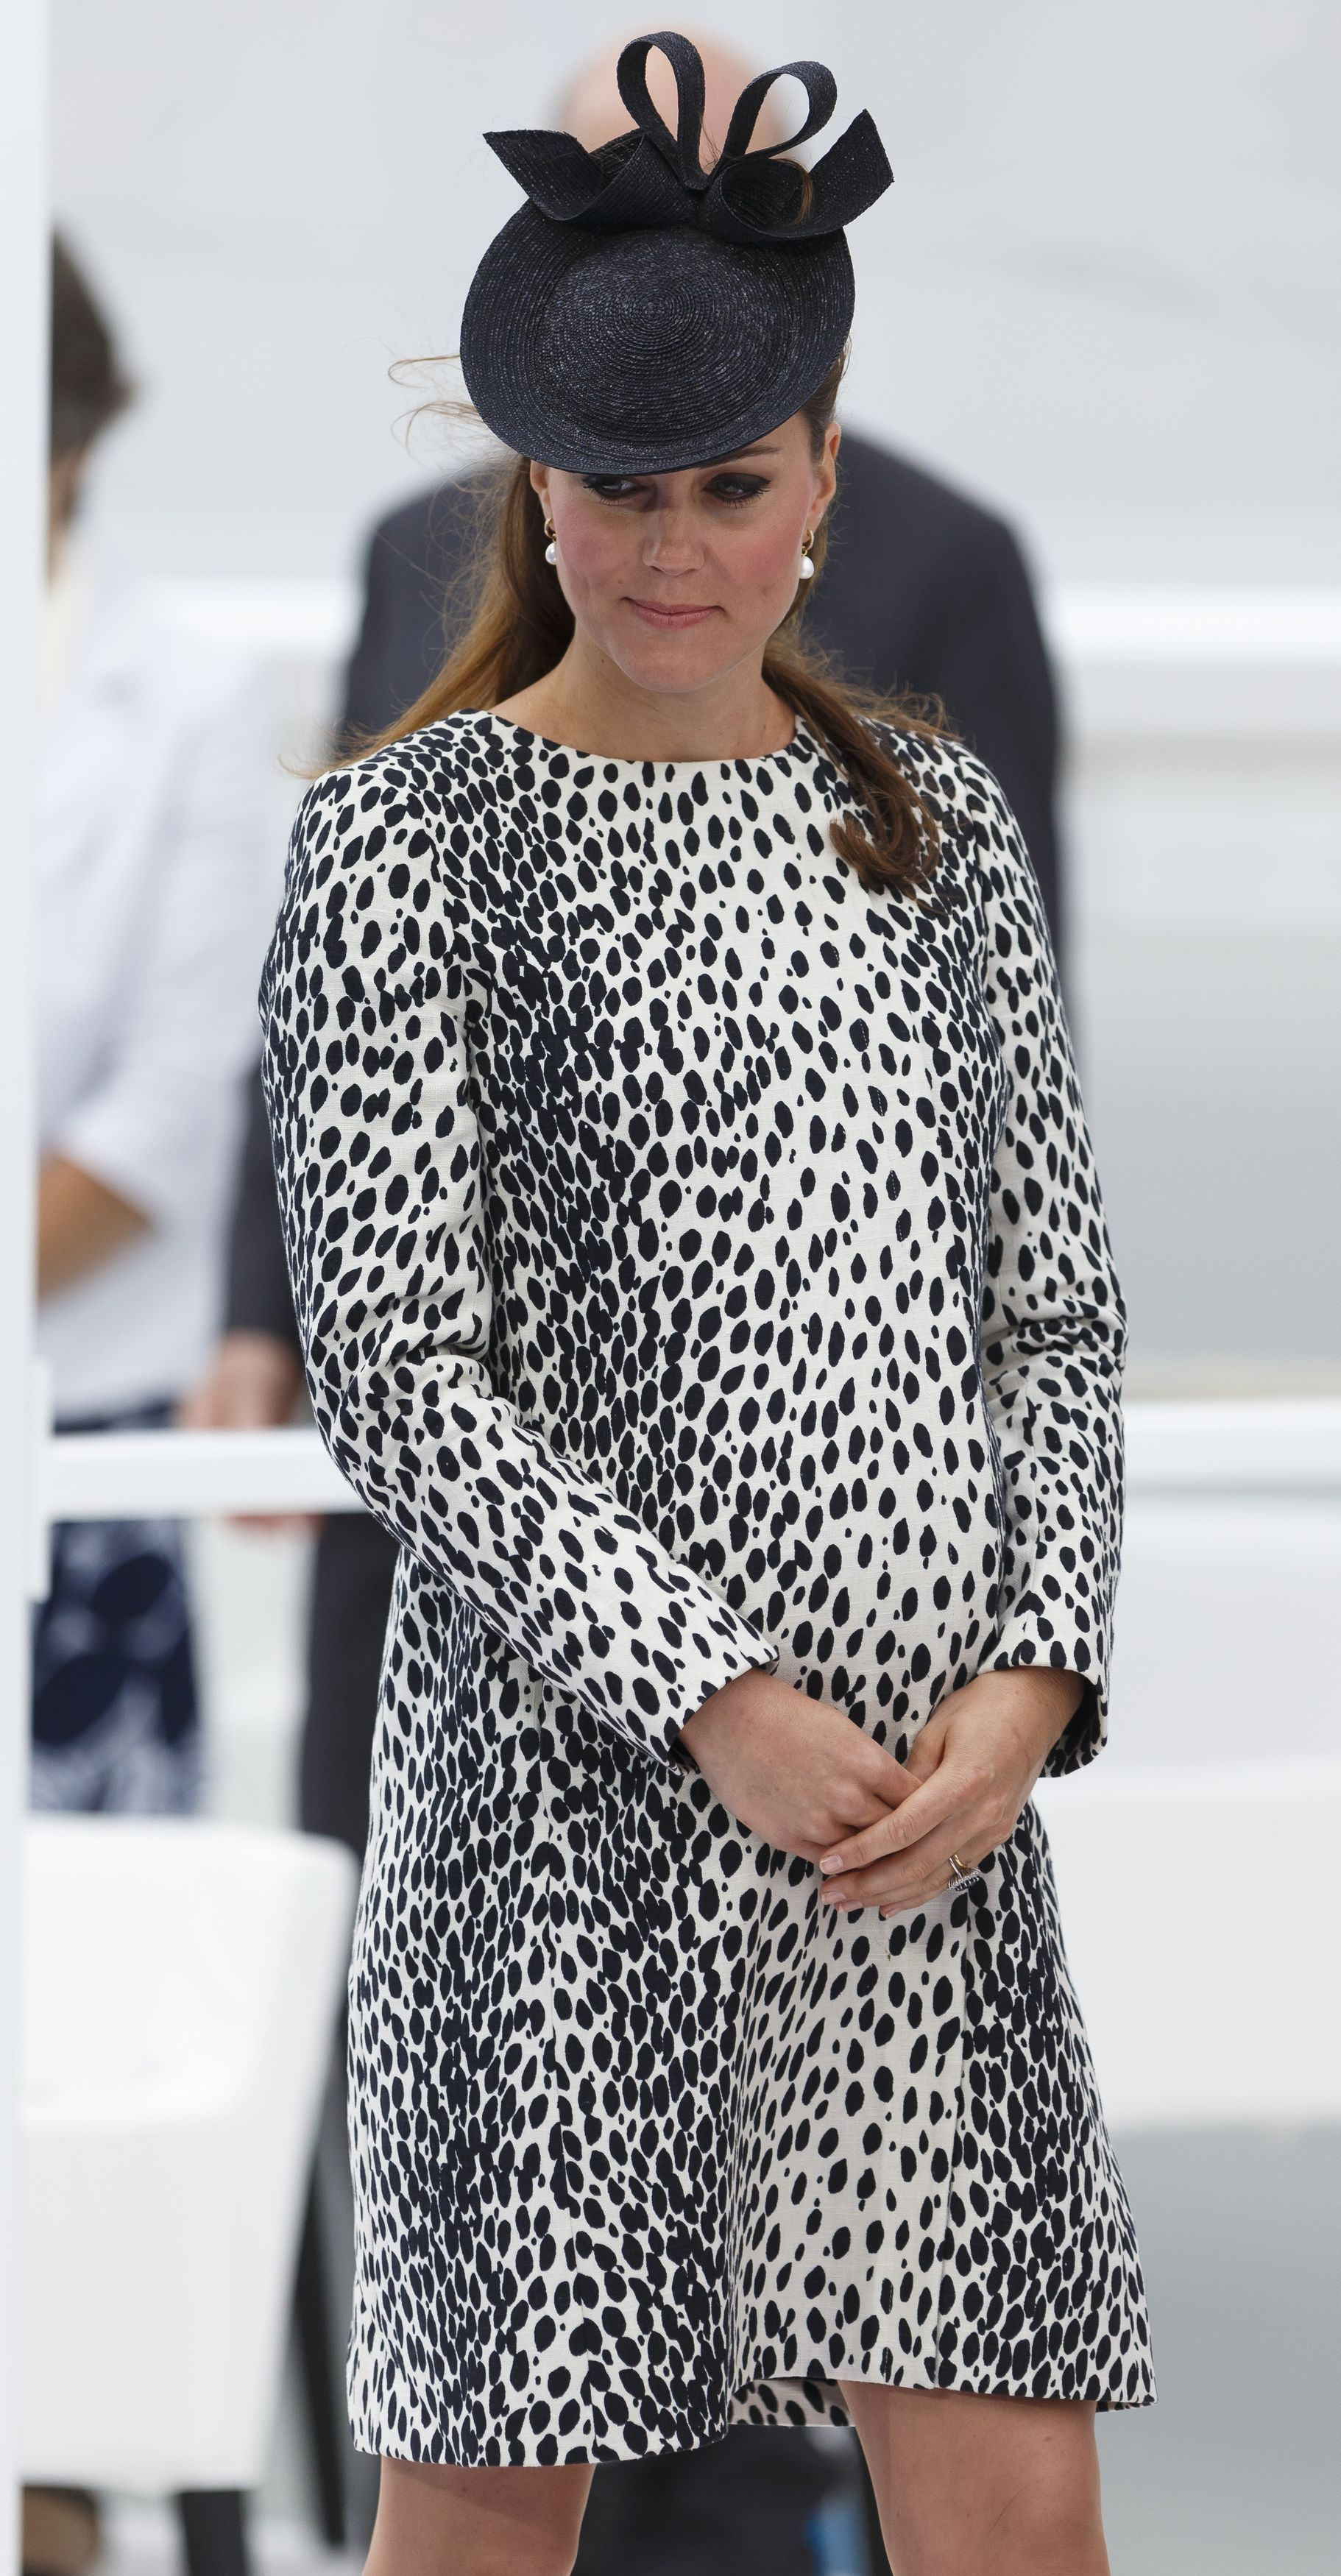 Catherine, Duchess of Cambridge attends the Princess Cruises ship naming ceremony at Ocean Terminal on June 13, 2013 in Southampton, England.